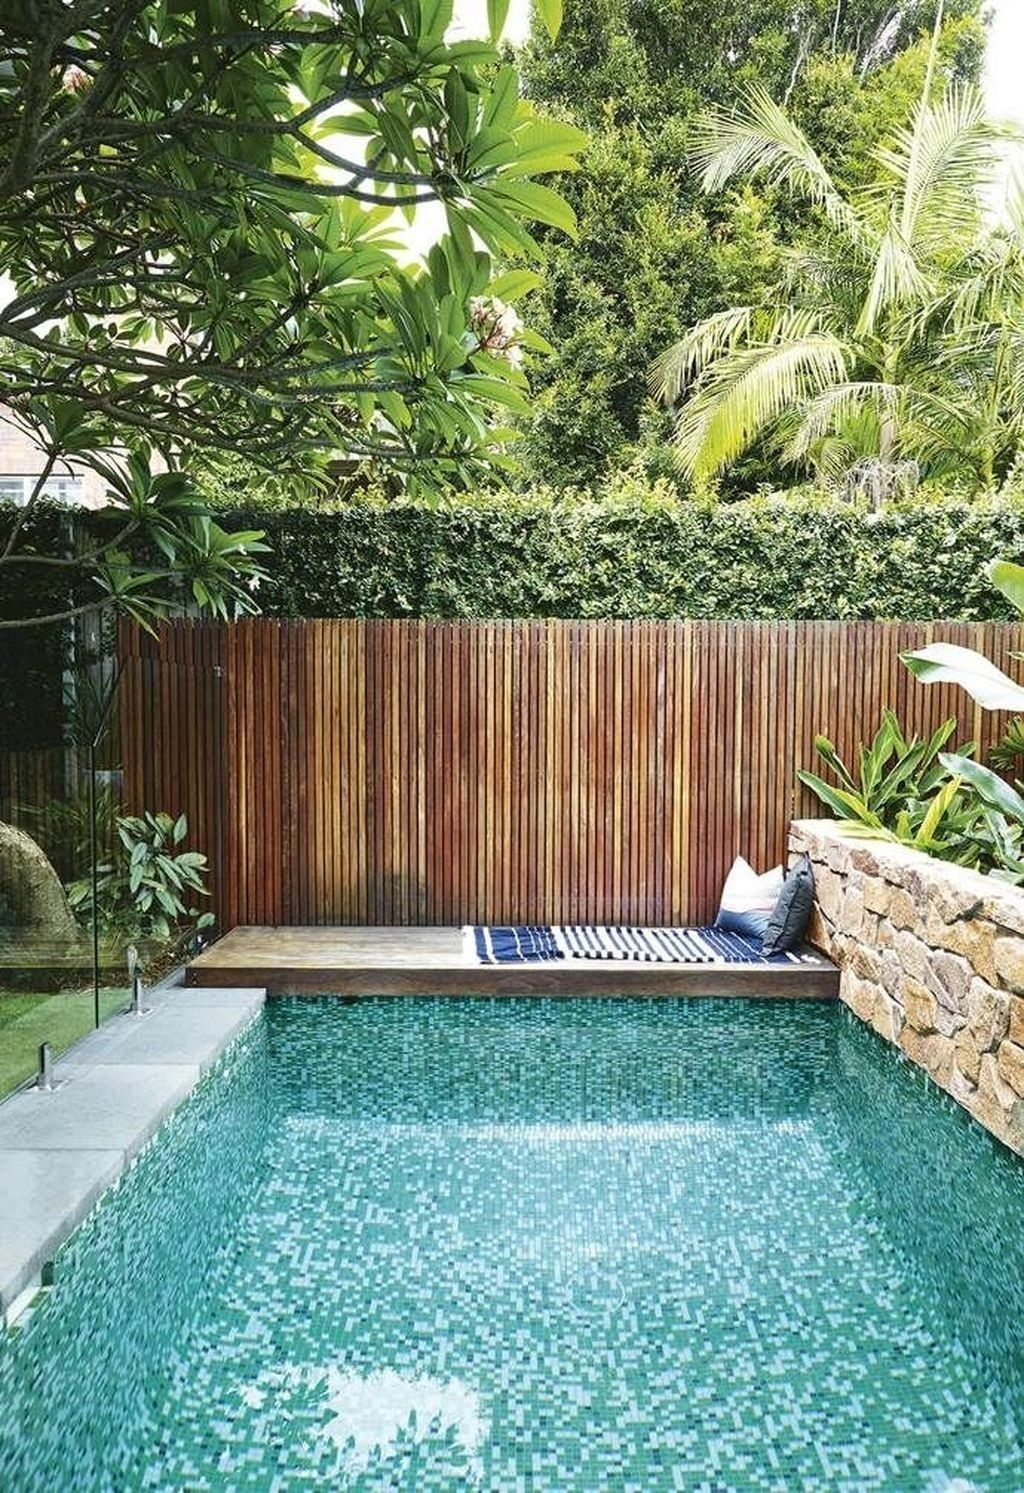 30 Amazing Natural Small Pools Design Ideas For Backyard Coodecor Backyard Pool Landscaping Small Backyard Pools Backyard